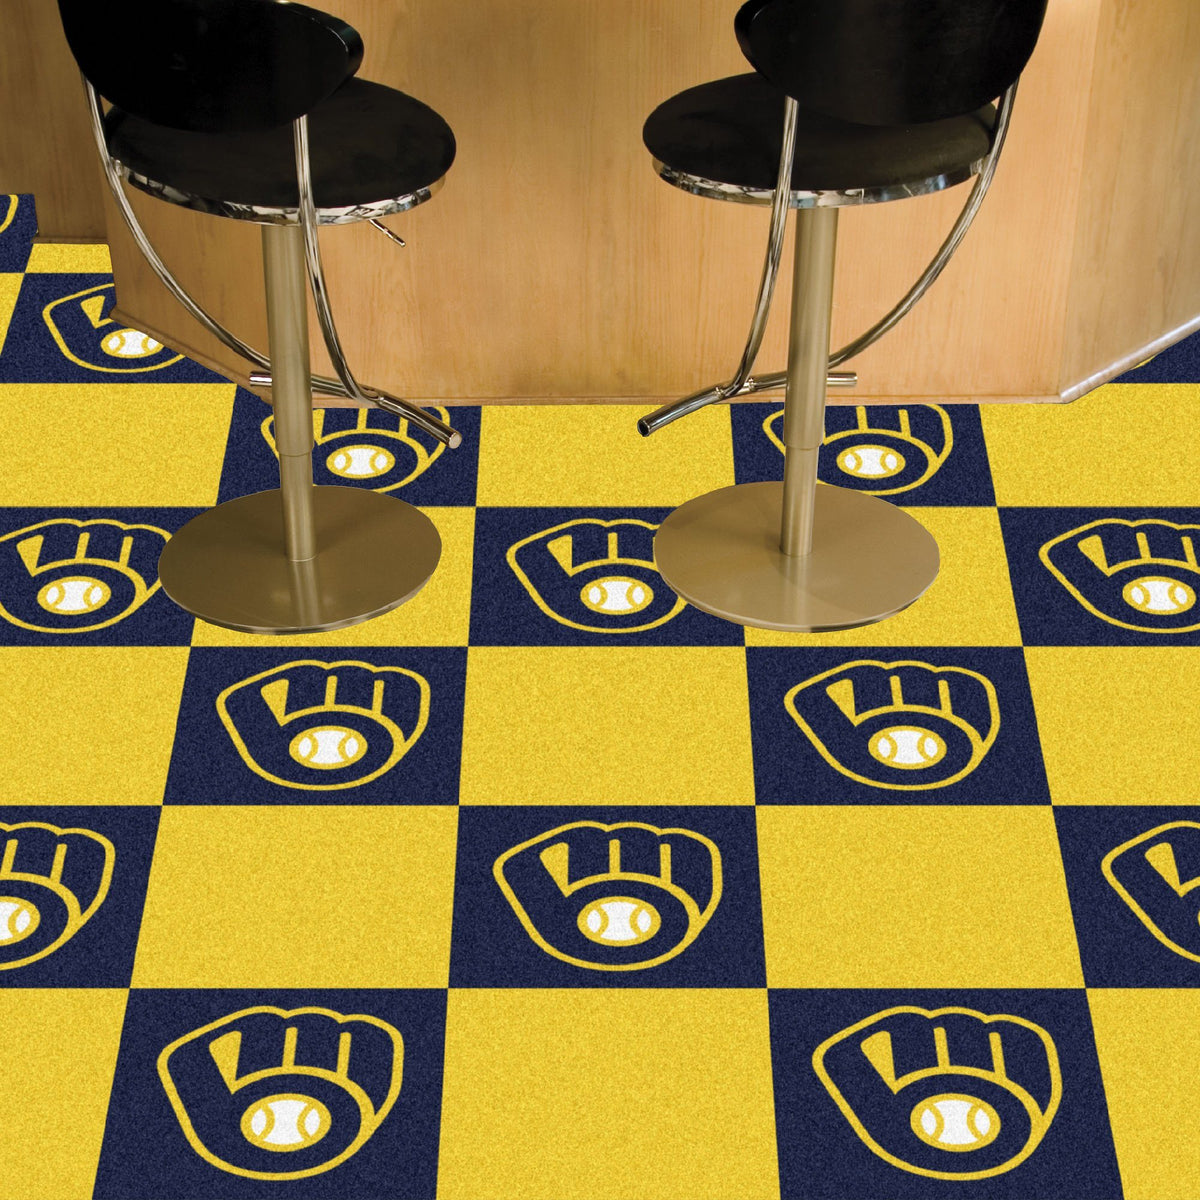 MLB - Team Carpet Tiles MLB Mats, Carpet Tile Flooring, Team Carpet Tiles, MLB, Home Fan Mats Milwaukee Brewers